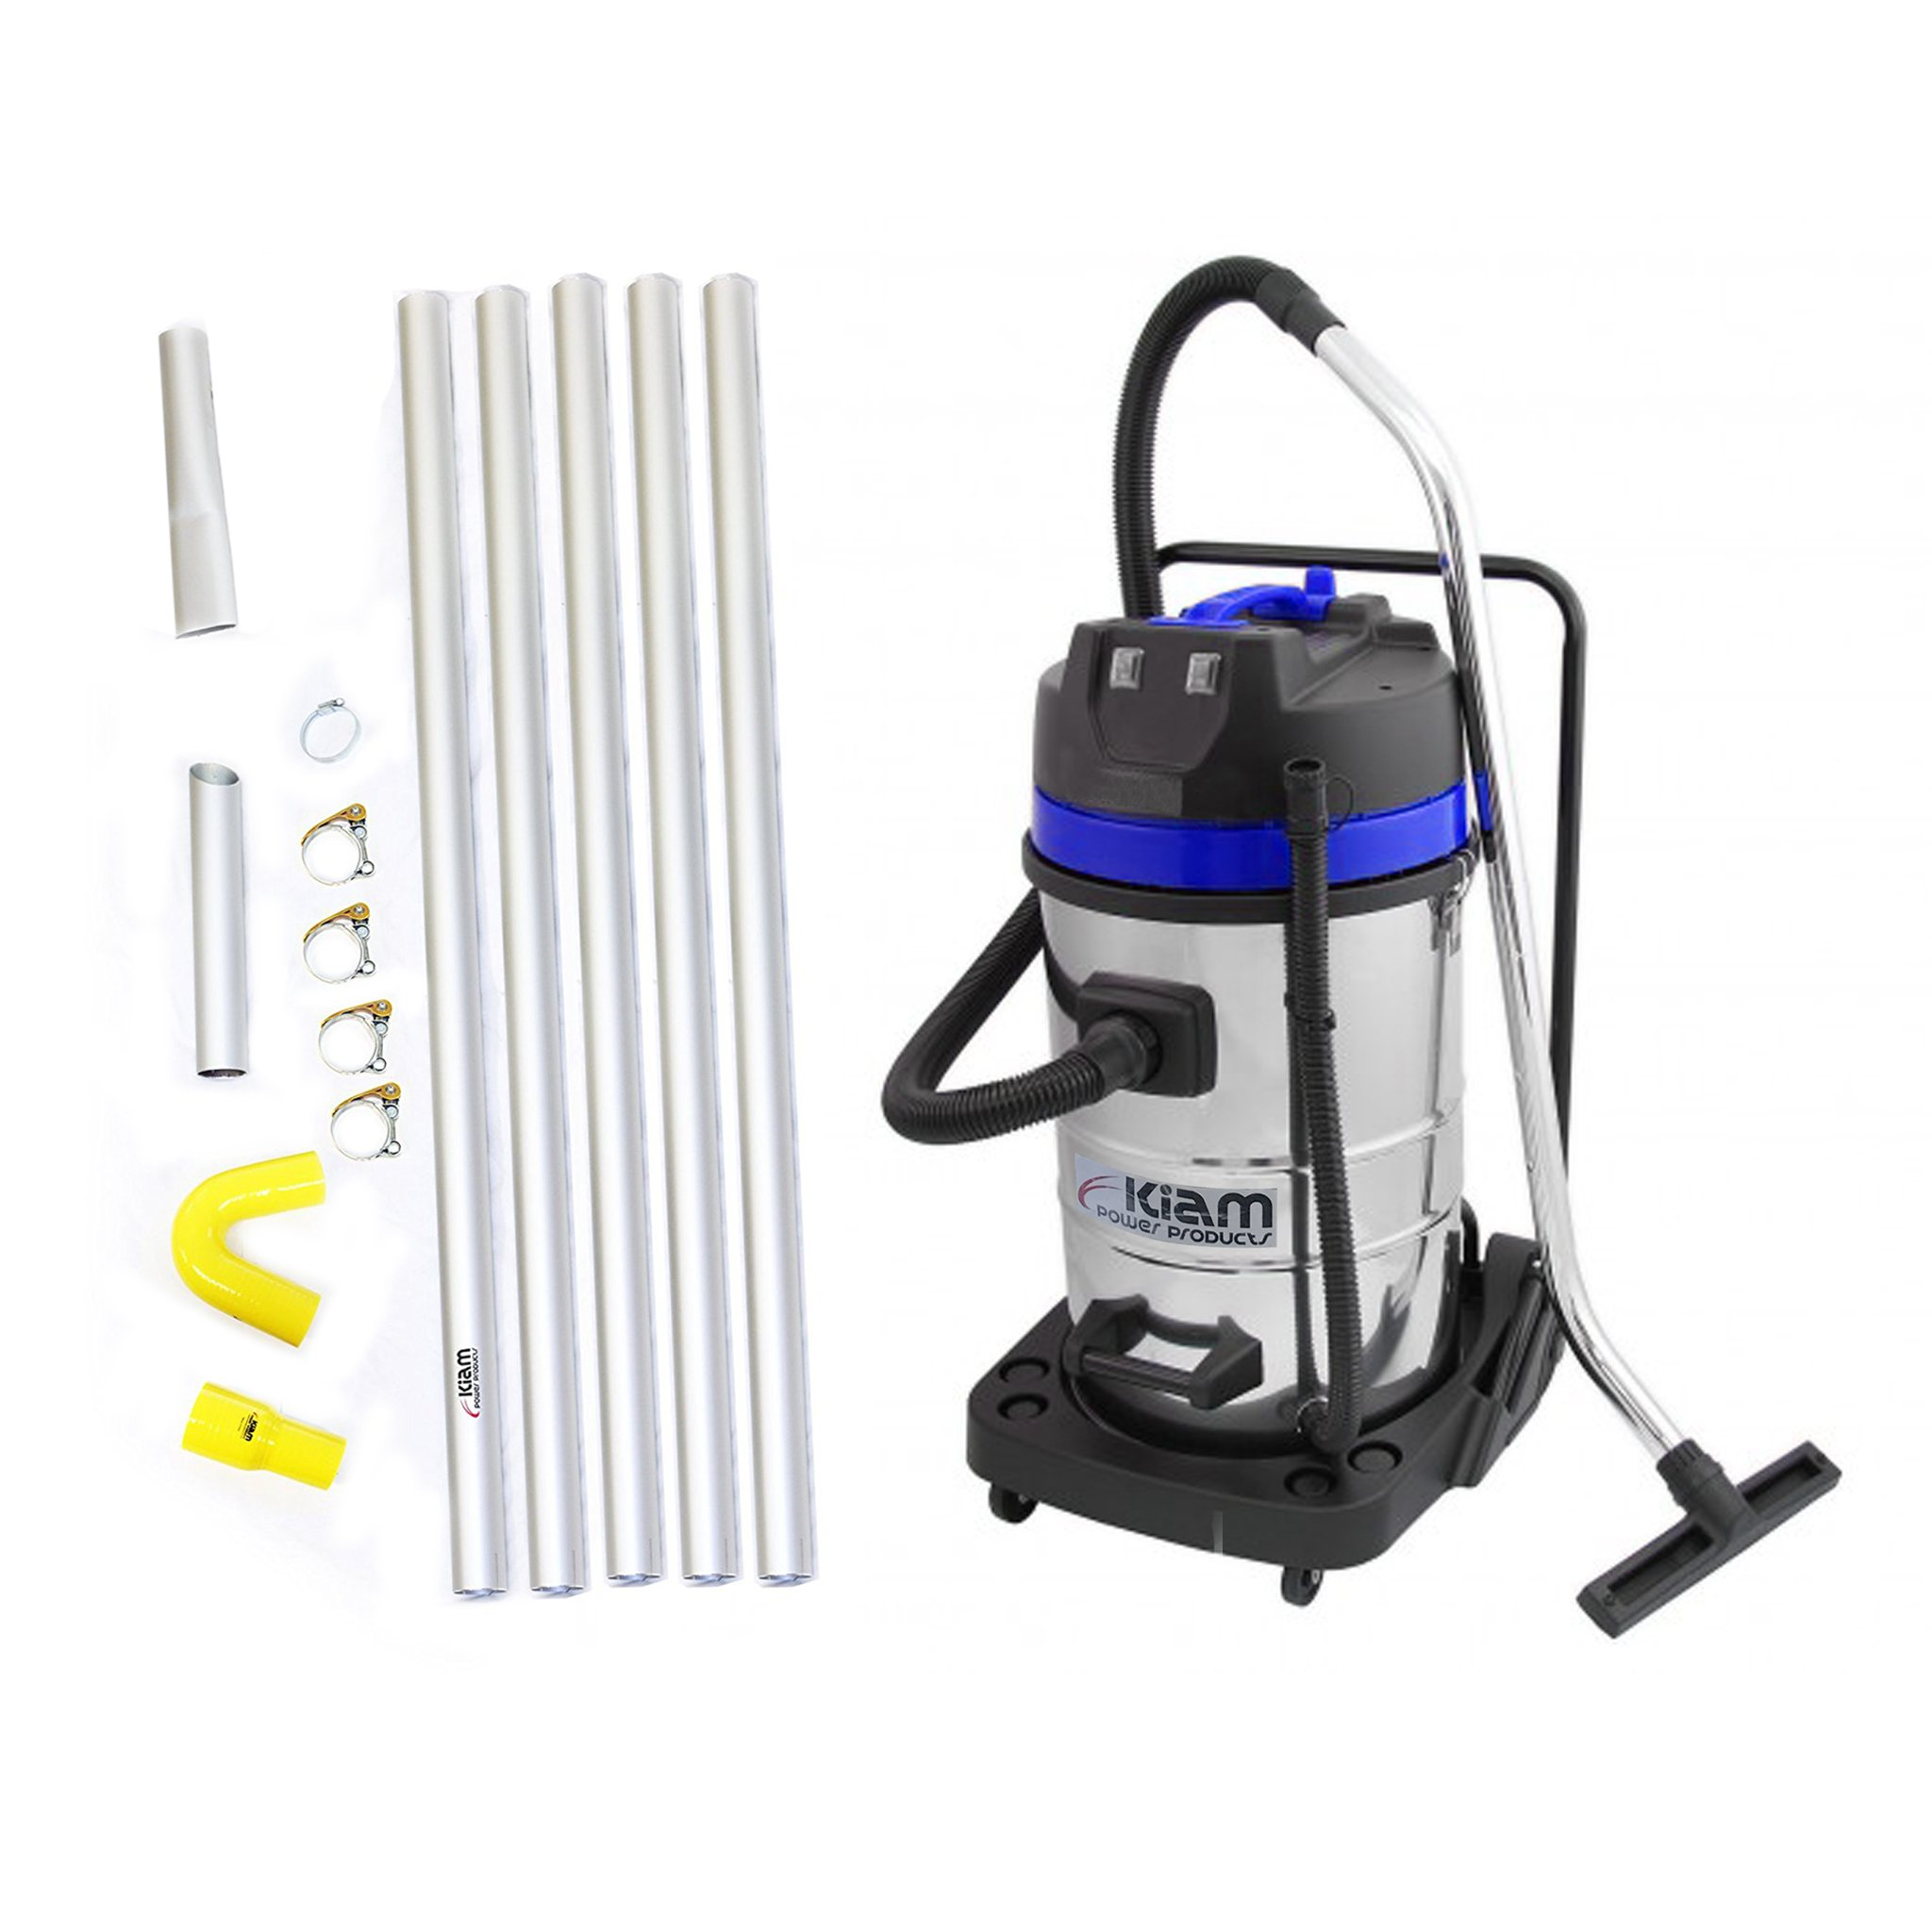 GutterProVac 20ft (2 Story) Commercial Gutter Cleaning Vacuum System, Professional Equipment and Dual Motor, 2.7 HP, Industrial Wet & Dry Vacuum Cleaner and Aluminium Gutter Cleaning Poles by Maxxus Industries (Image #9)